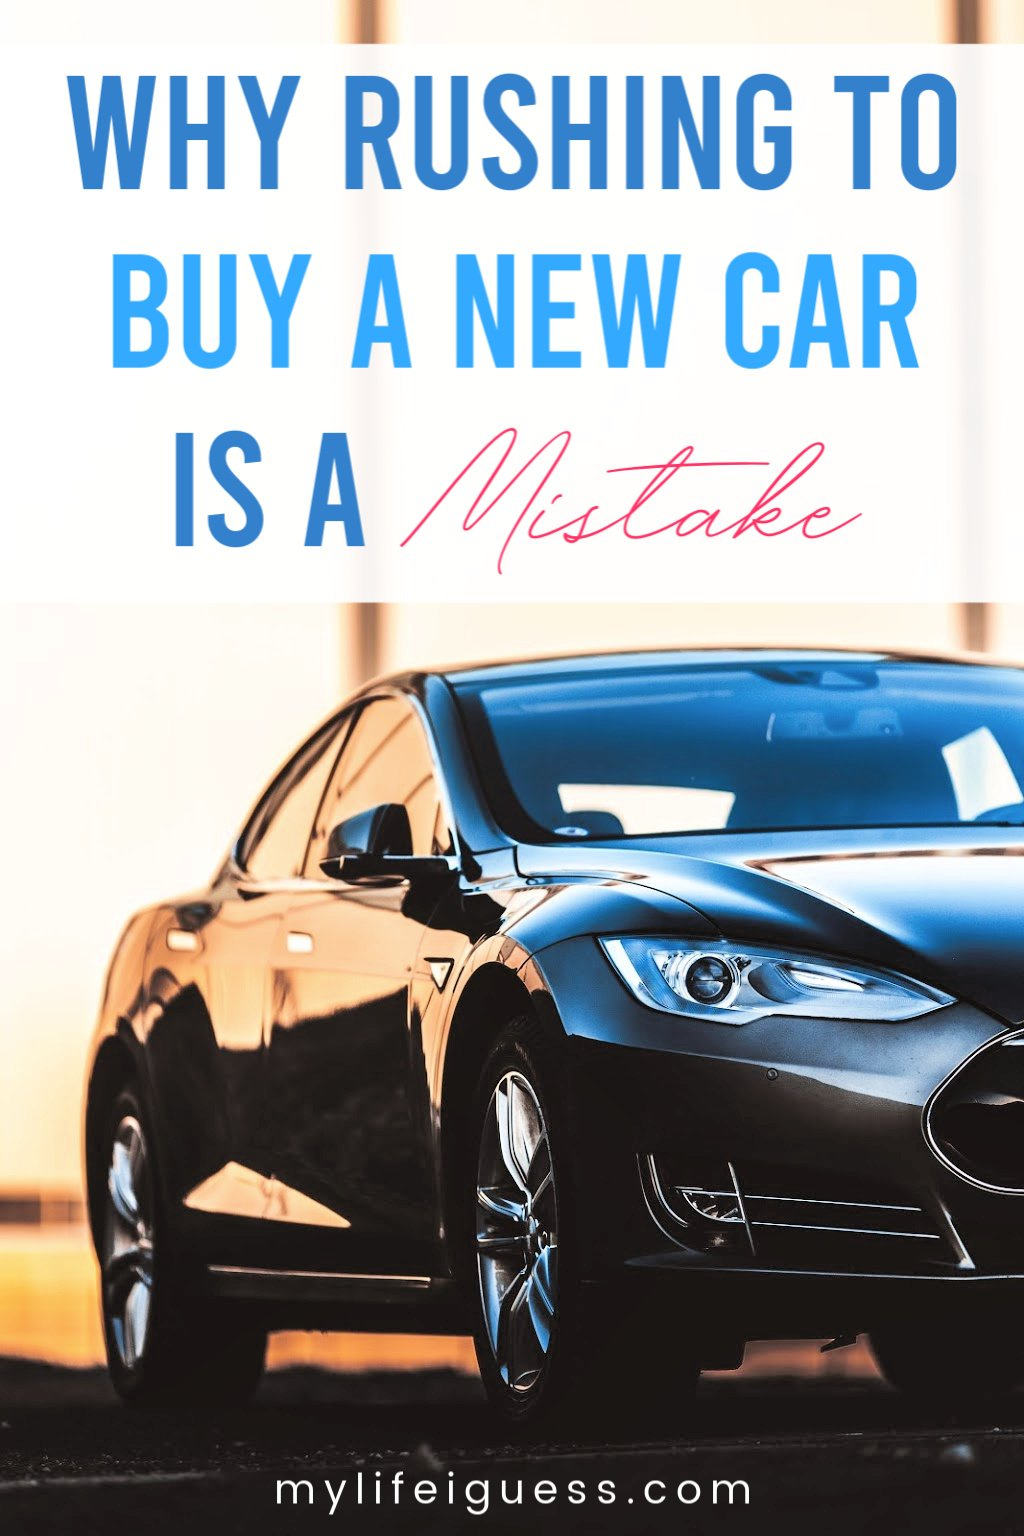 Why Rushing to Buy a New Car is a Mistake - Buying a car isn\'t your typical impulse purchase, but I\'m guilty of rushing to buy a new car, which turned out to be a costly mistake. Learn from my mistake. Keep driving your old car. Talk public transit. Rent a car temporarily. Make a plan to figure out if you really need a car or just want one. And figure out how much you can afford to spend based on your budget. Your financial future will thank you.